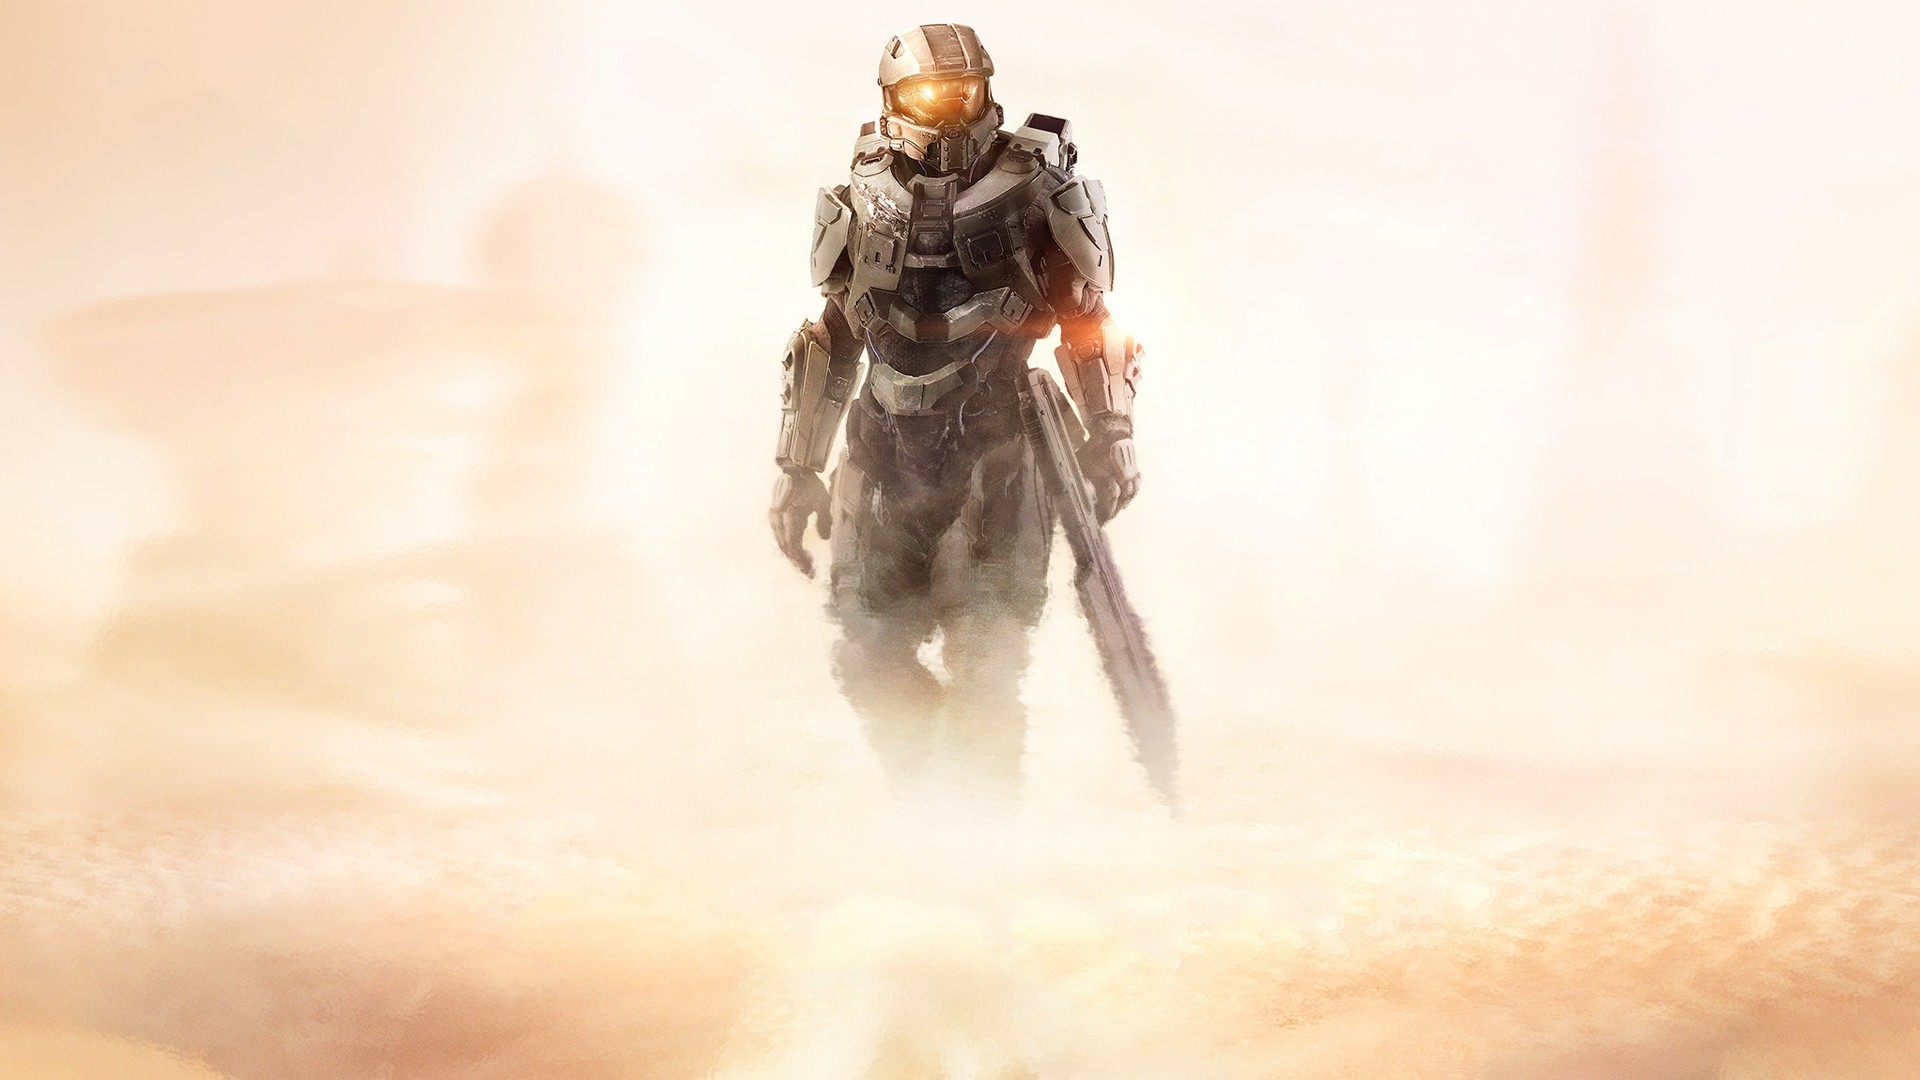 1242x2688 Halo 5 Guardians Master Chief Iphone Xs Max Wallpaper